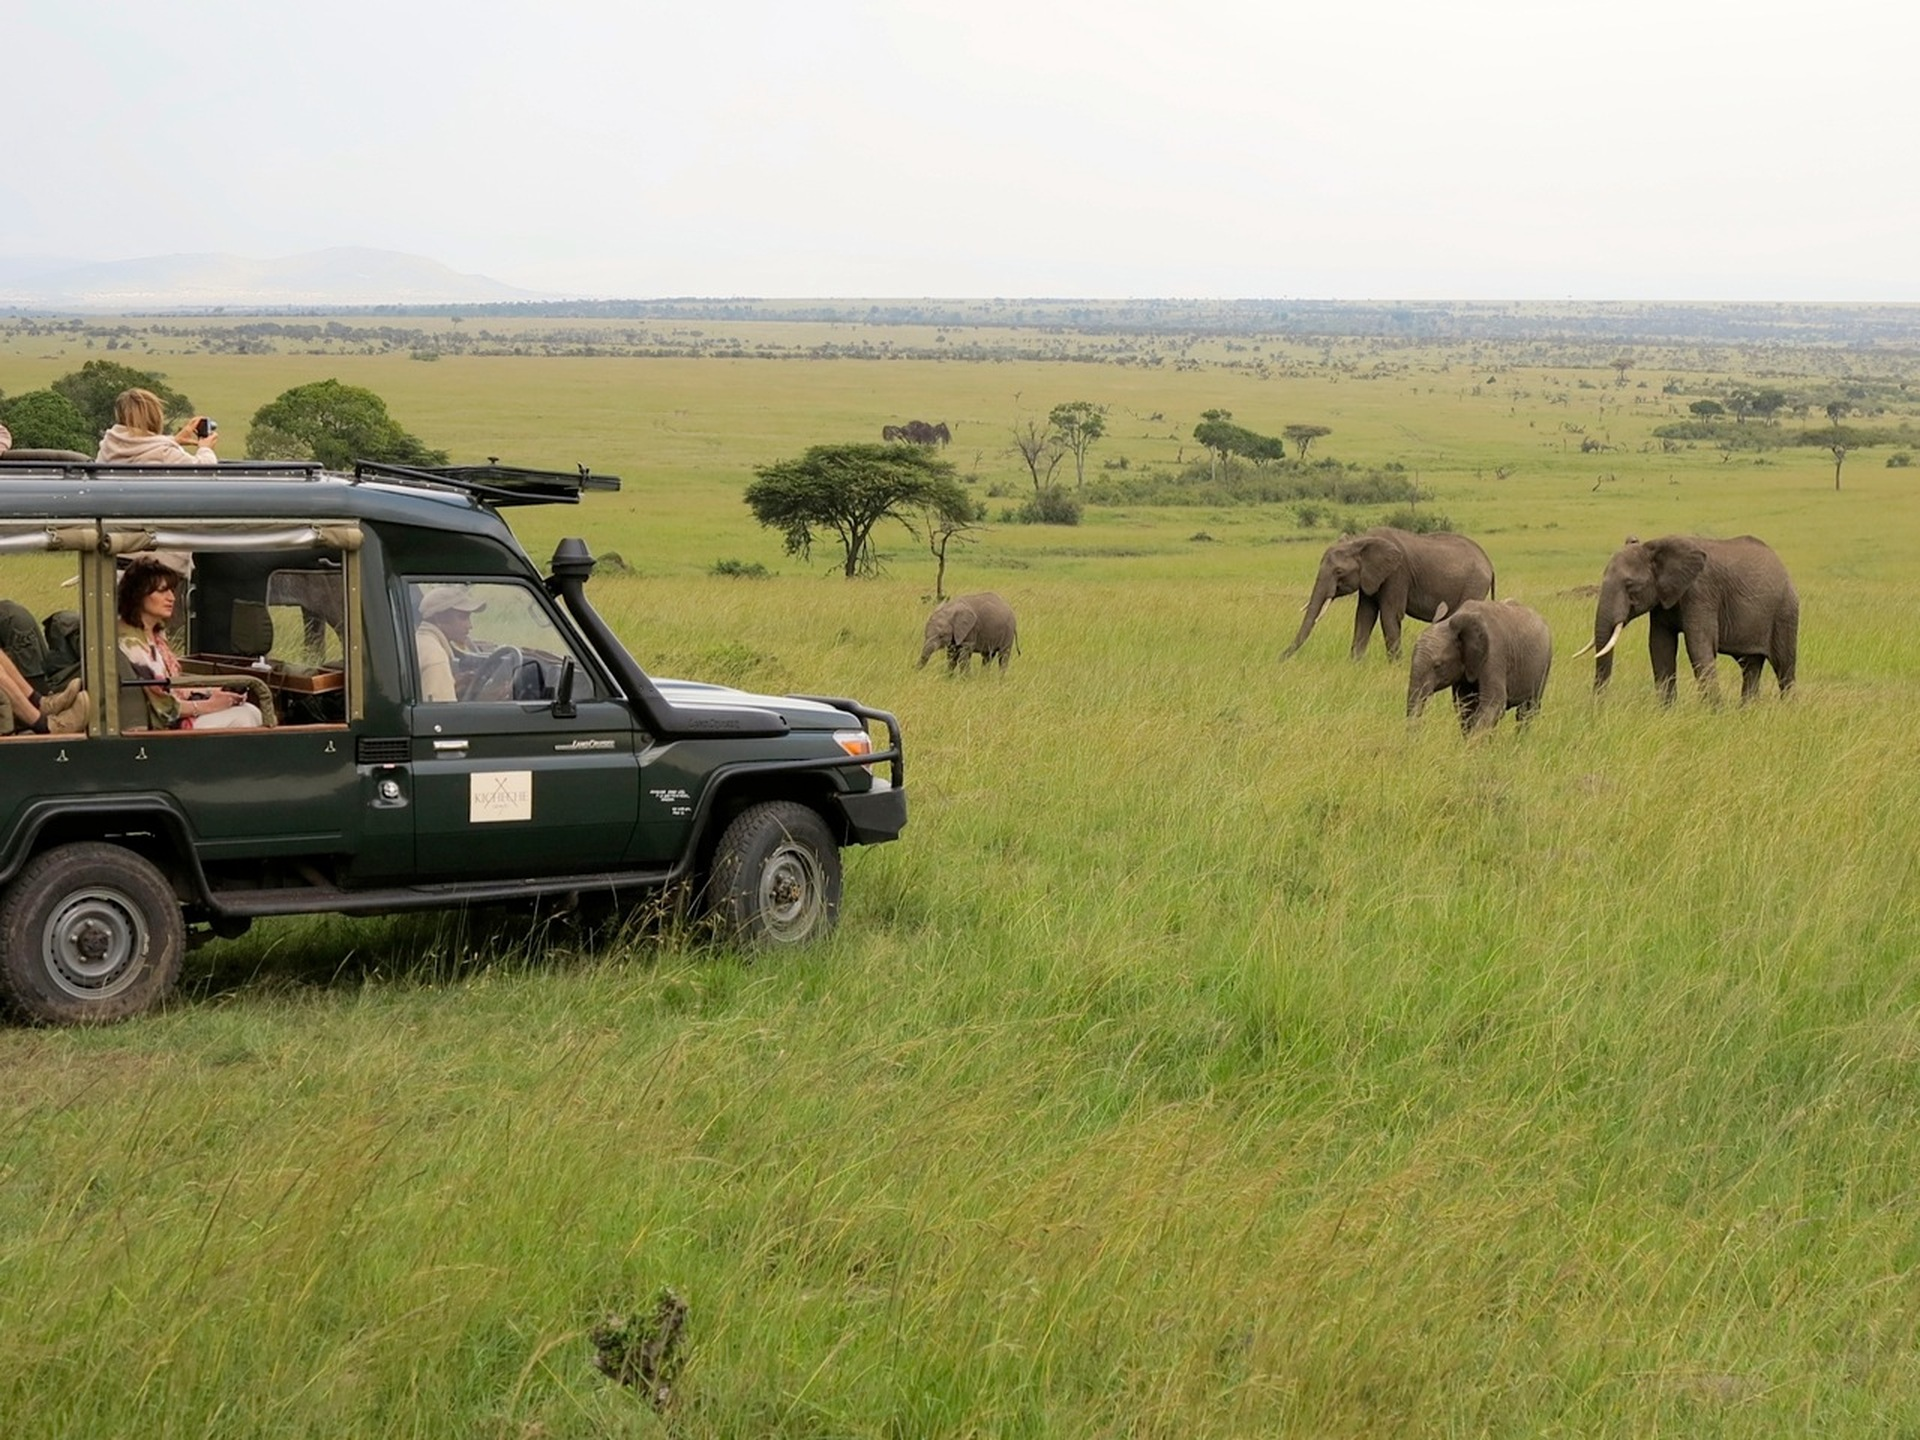 Kicheche Vehicle with 4 eles.jpg